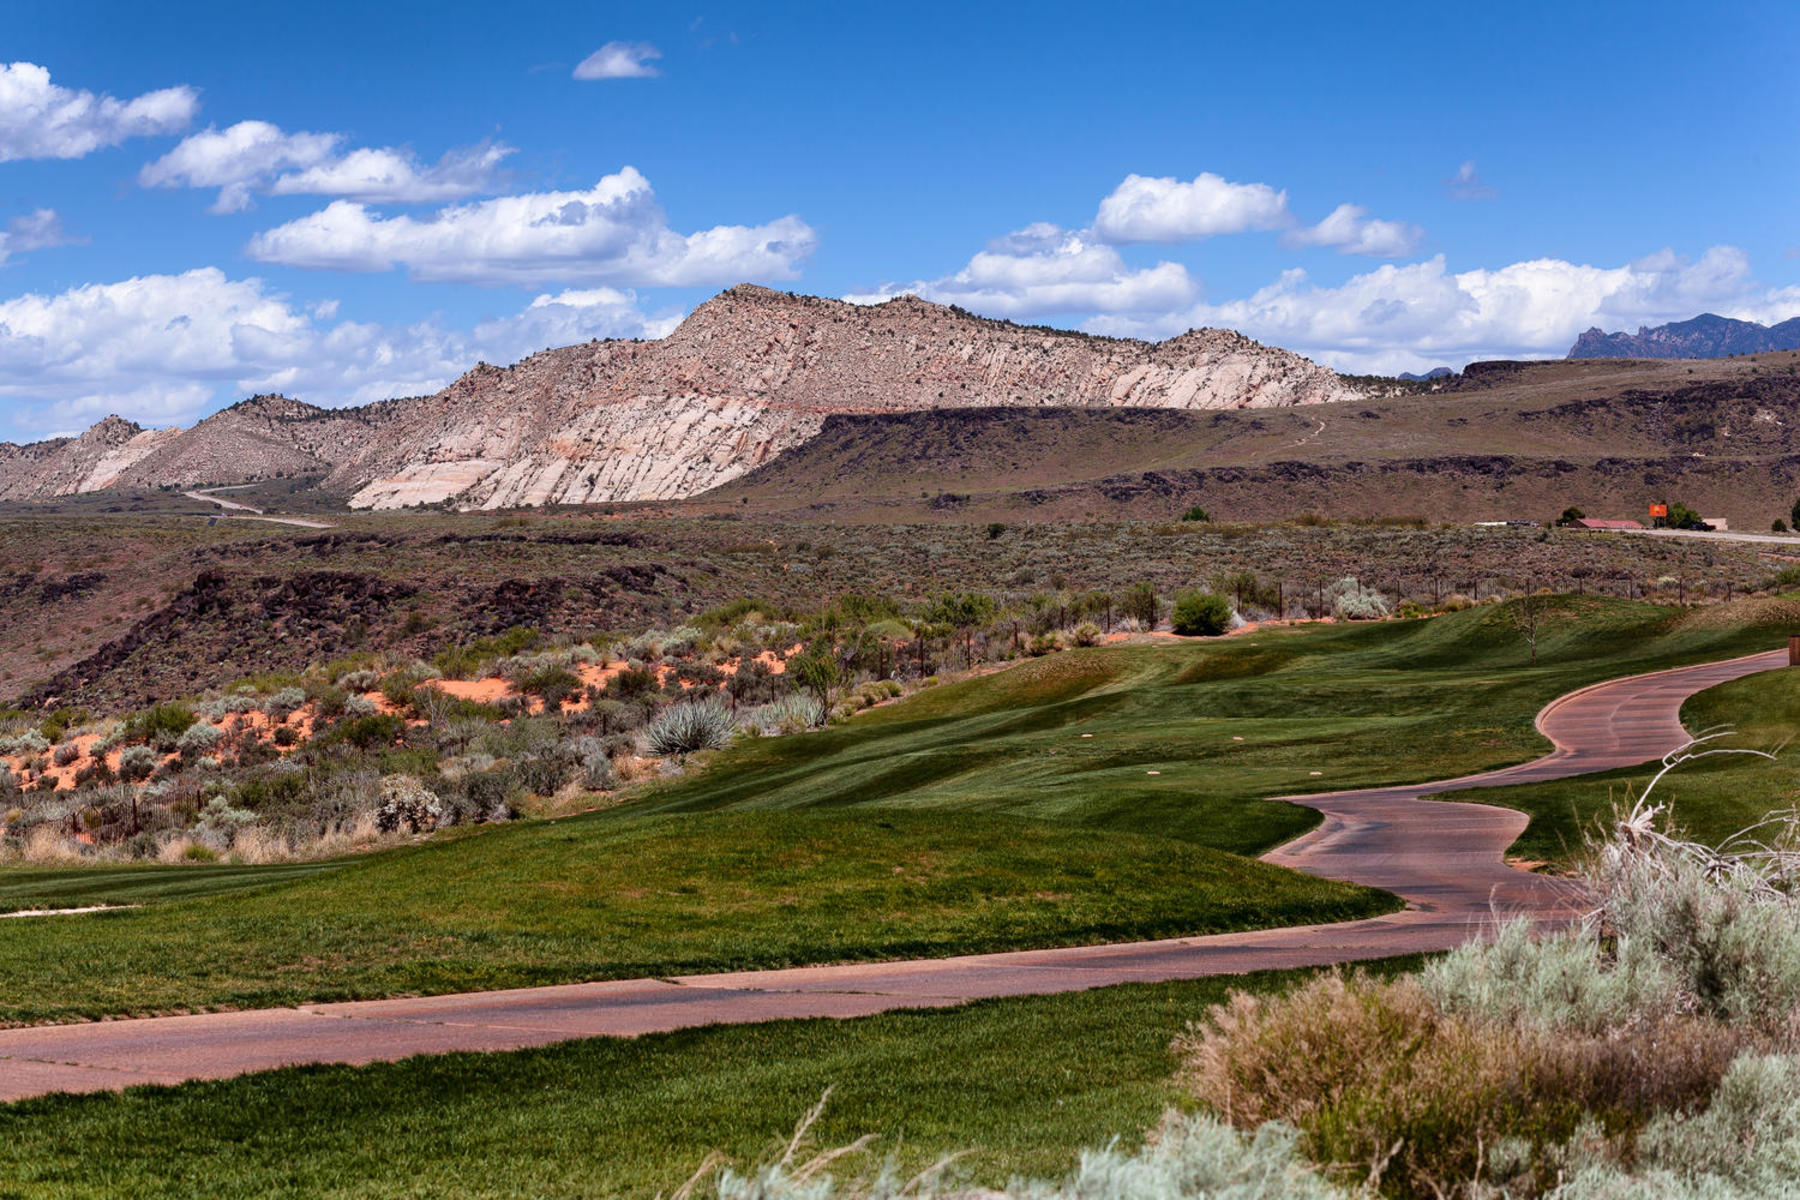 A rare .64 acre Rim and Golf Course lot. Majestic views of the red mountains of Snow Canyon and of Pine mountain. Situated along The Ledges Golf Course signature #12th. green.  Words can not describe the panoramic views from this once in a life time dream home property. Please call listing agent for more information or details.